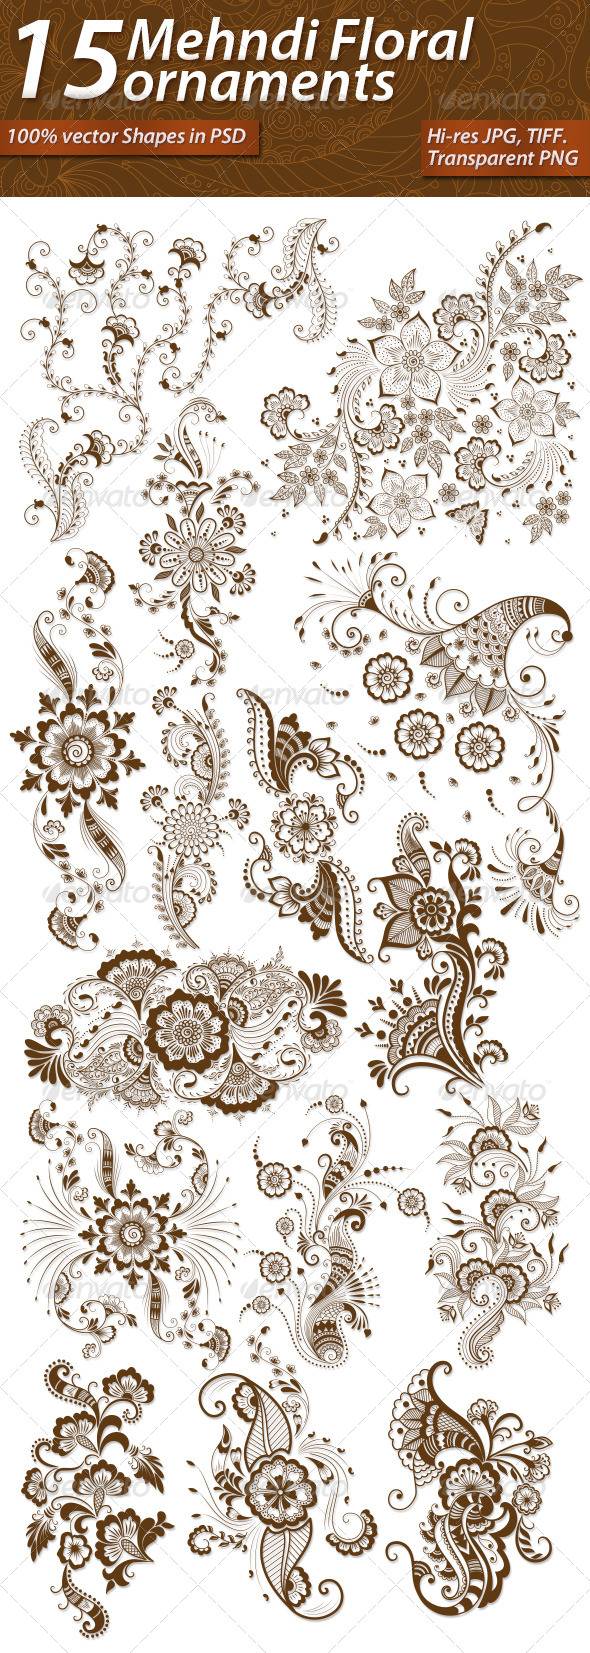 15 Mehndi Floral Ornaments Set#1 - Flourishes / Swirls Decorative